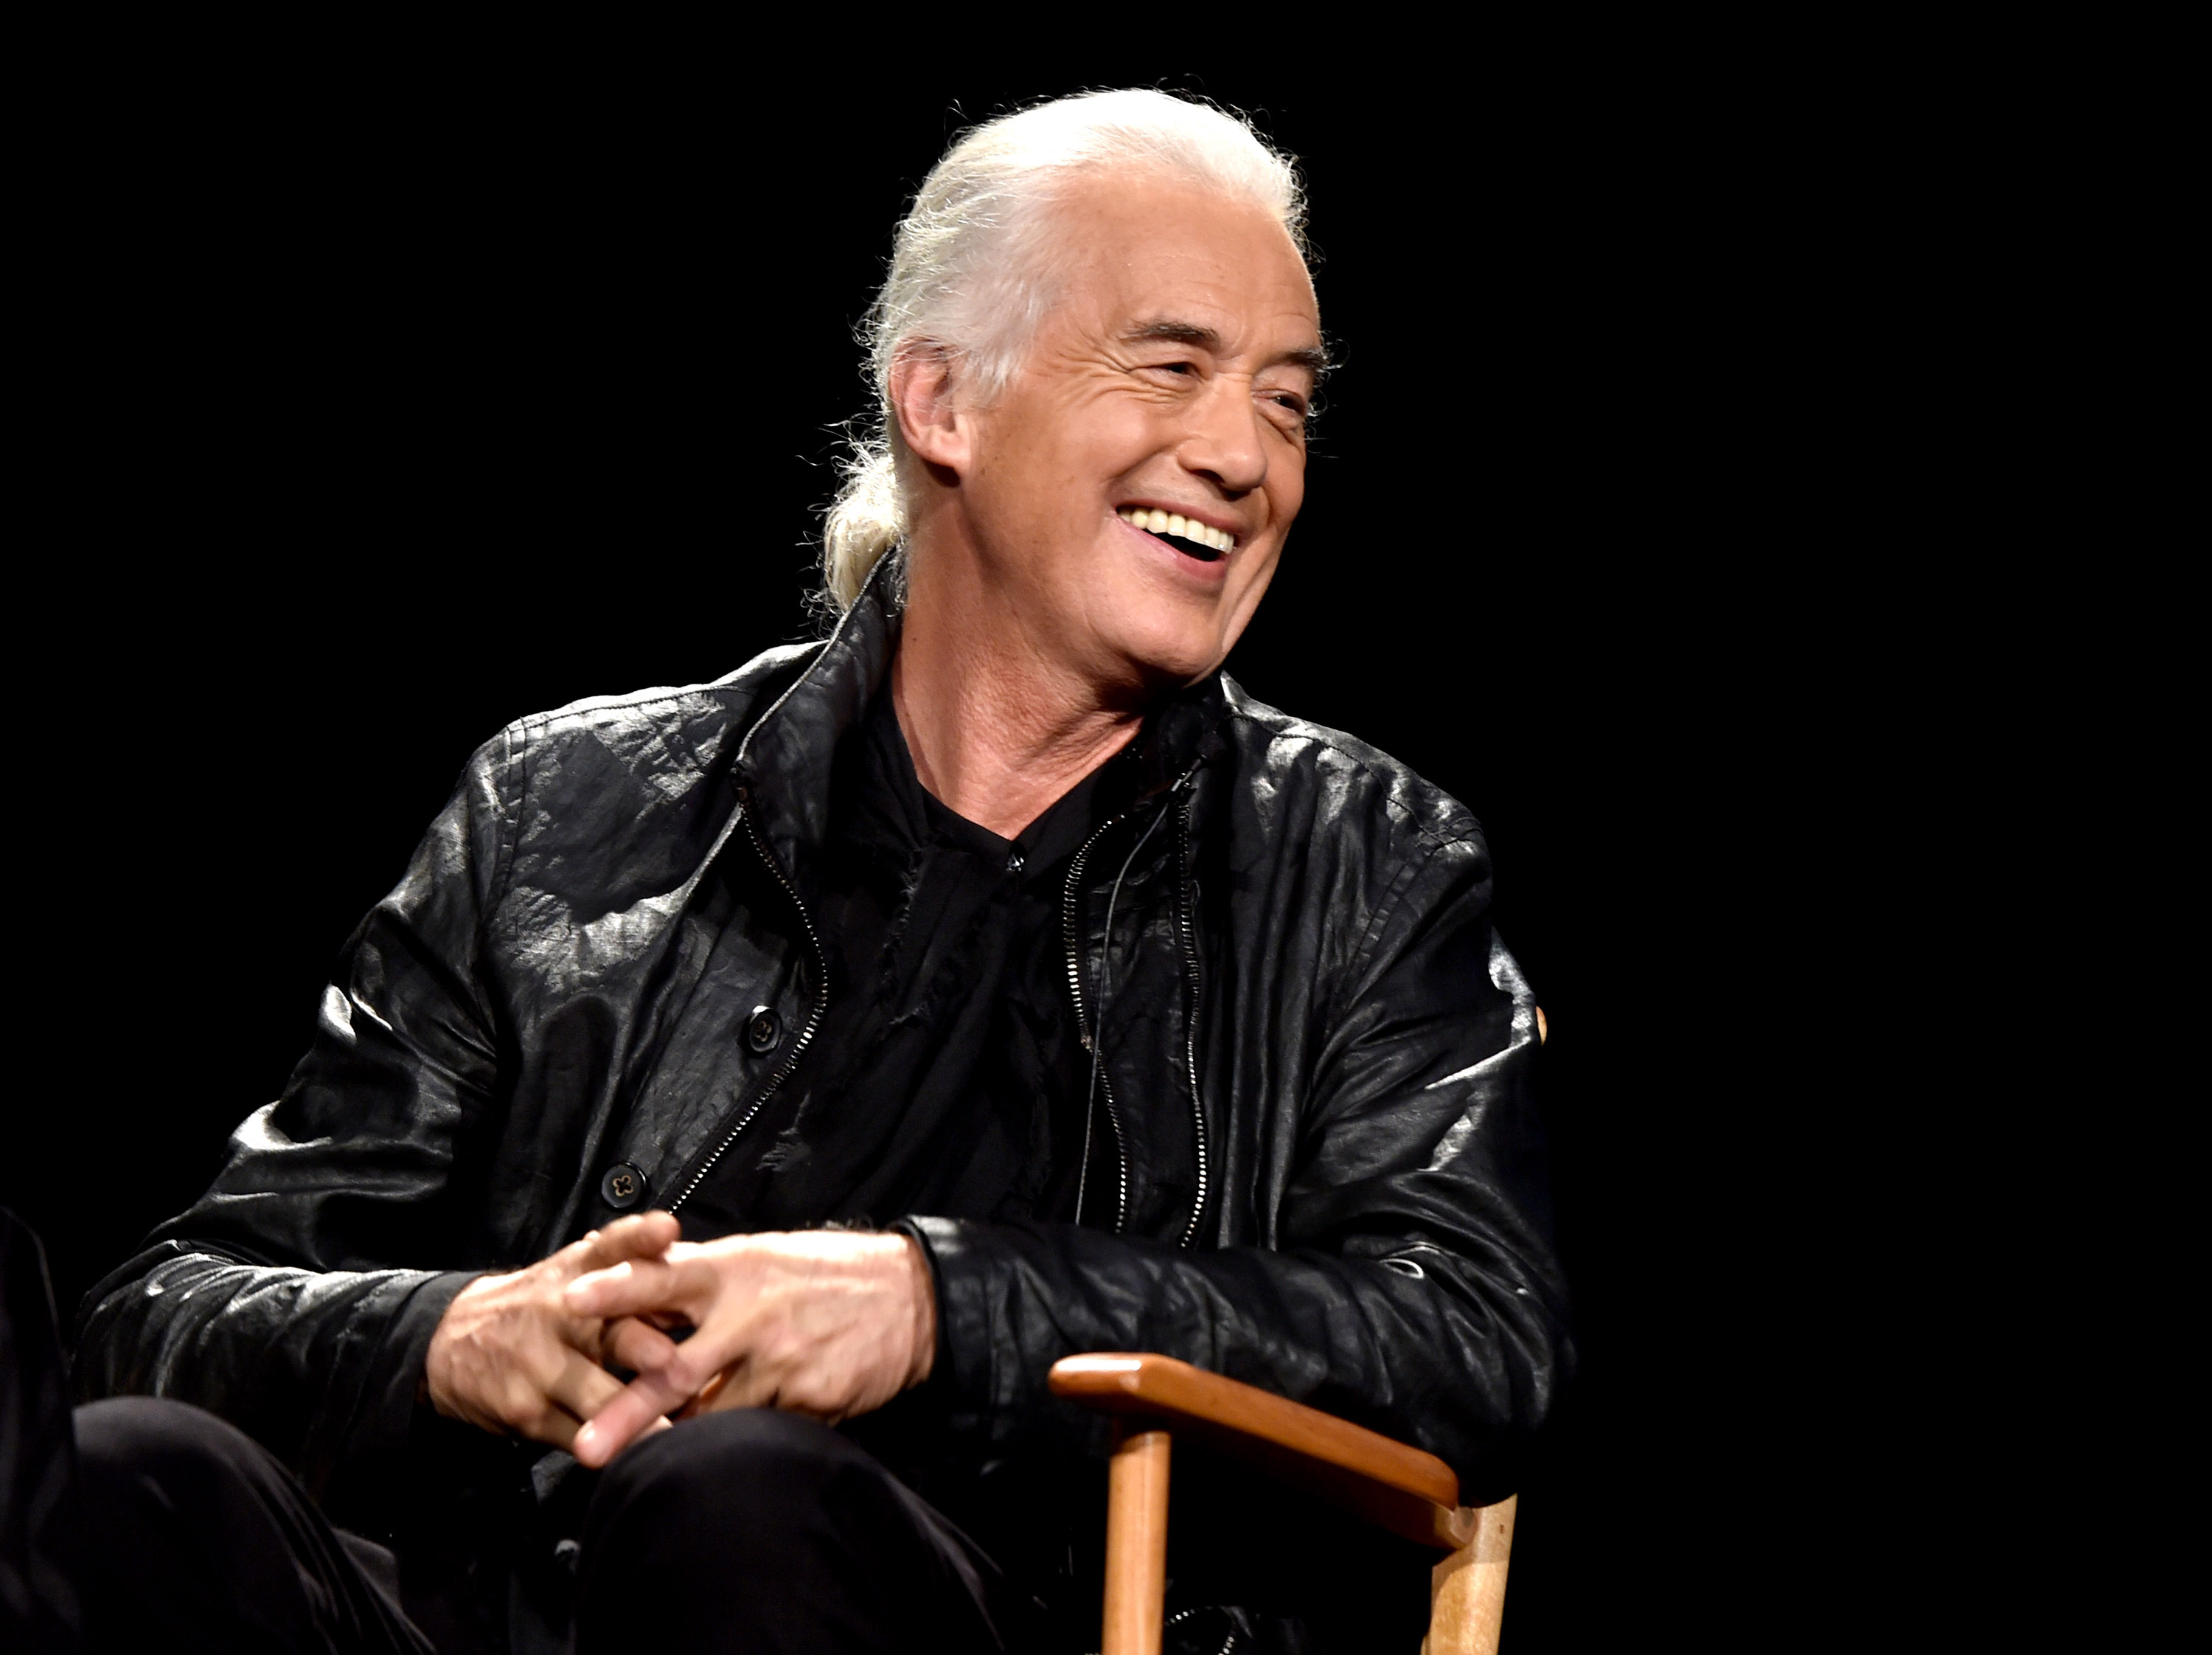 Jimmy Page Promises 'Quite Different' Direction With New Music